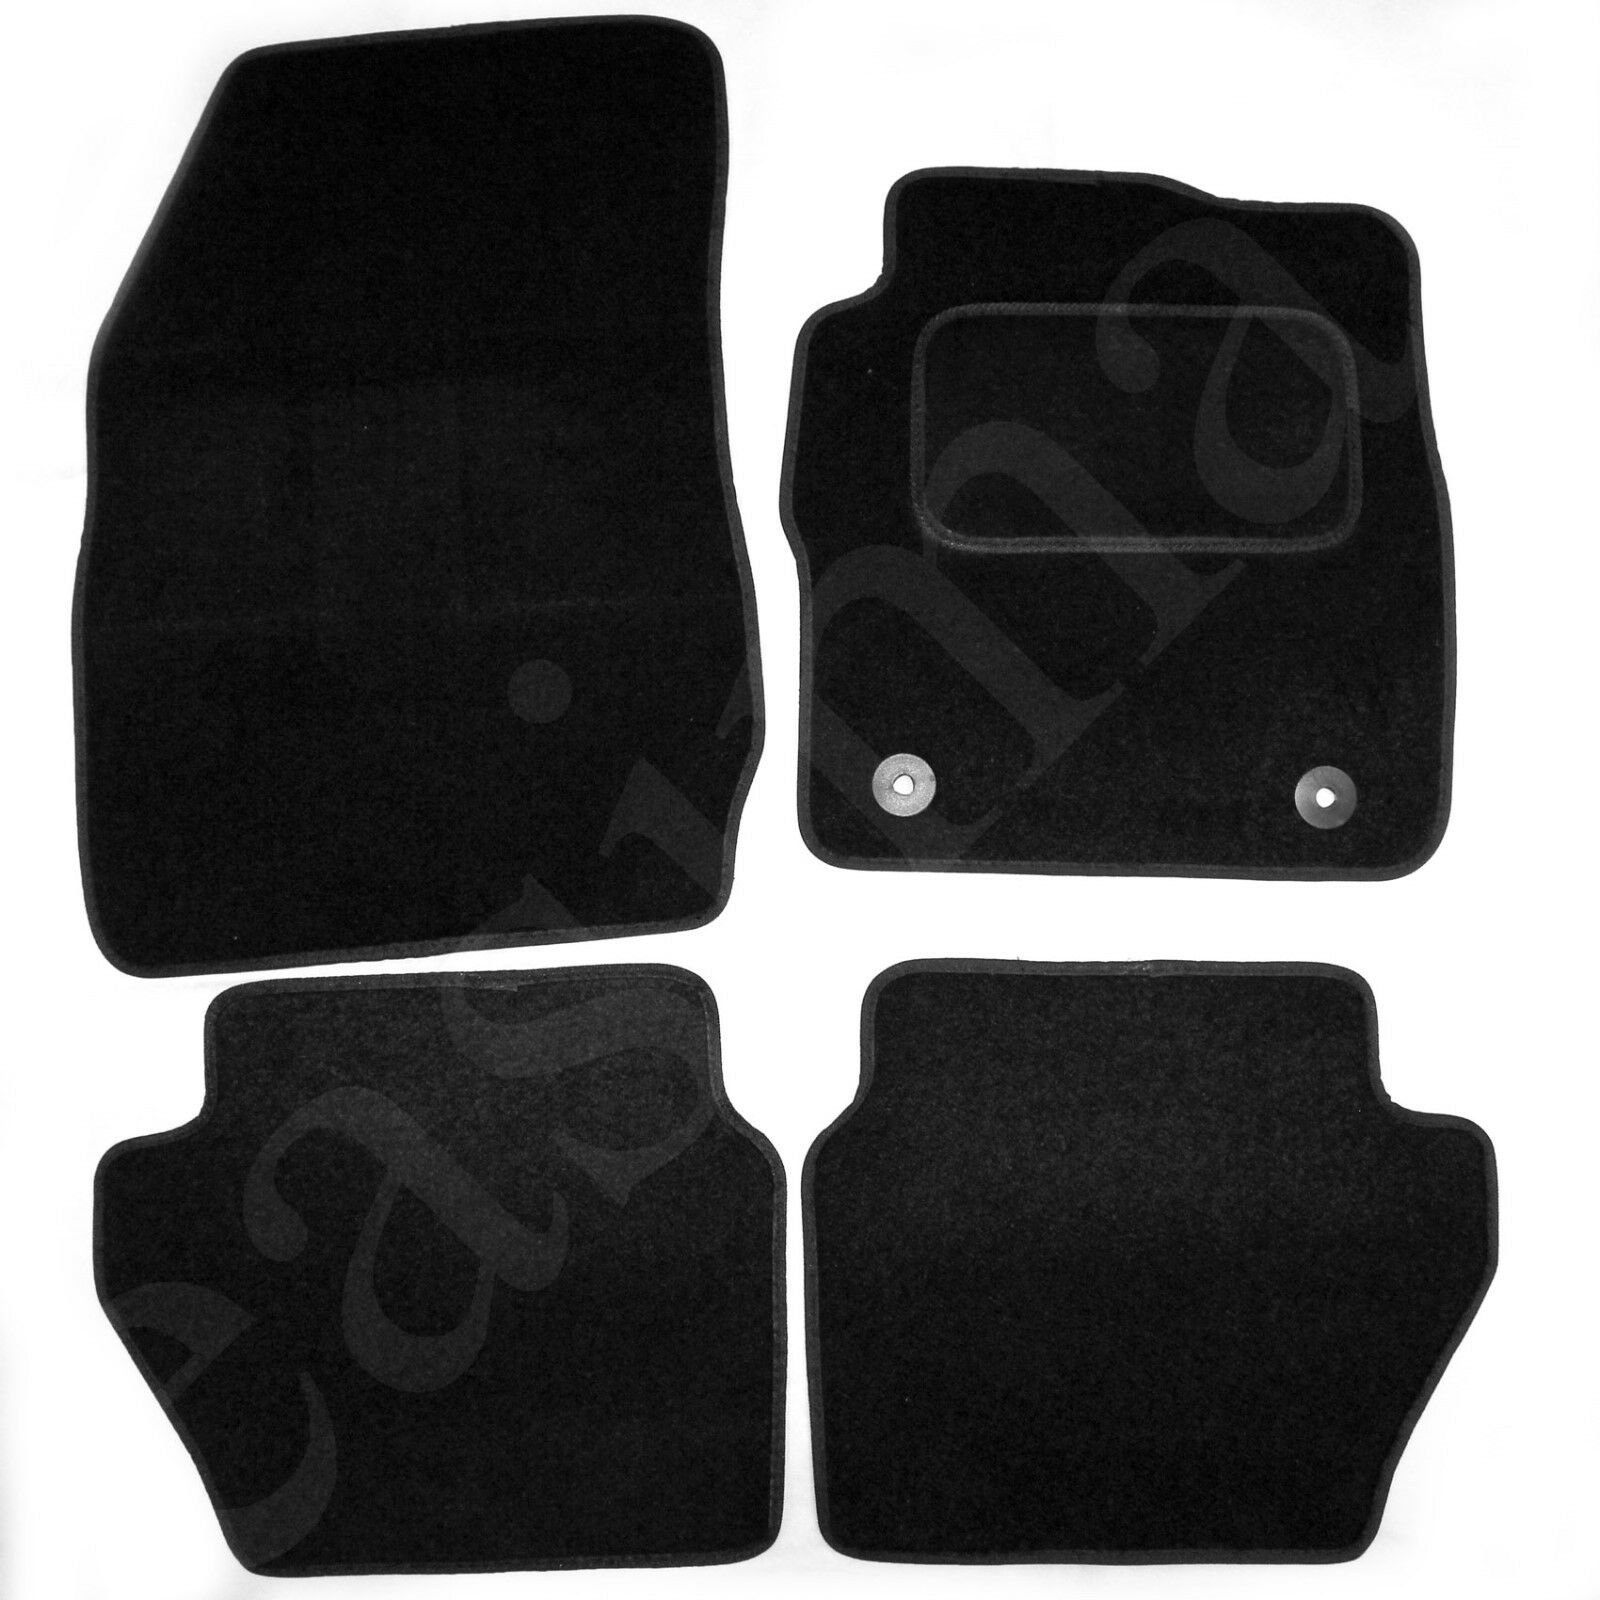 Car Parts - Ford Fiesta Mk7 2011-2017 Tailored Carpet Car Mats Black 4pc Floor Round Clip